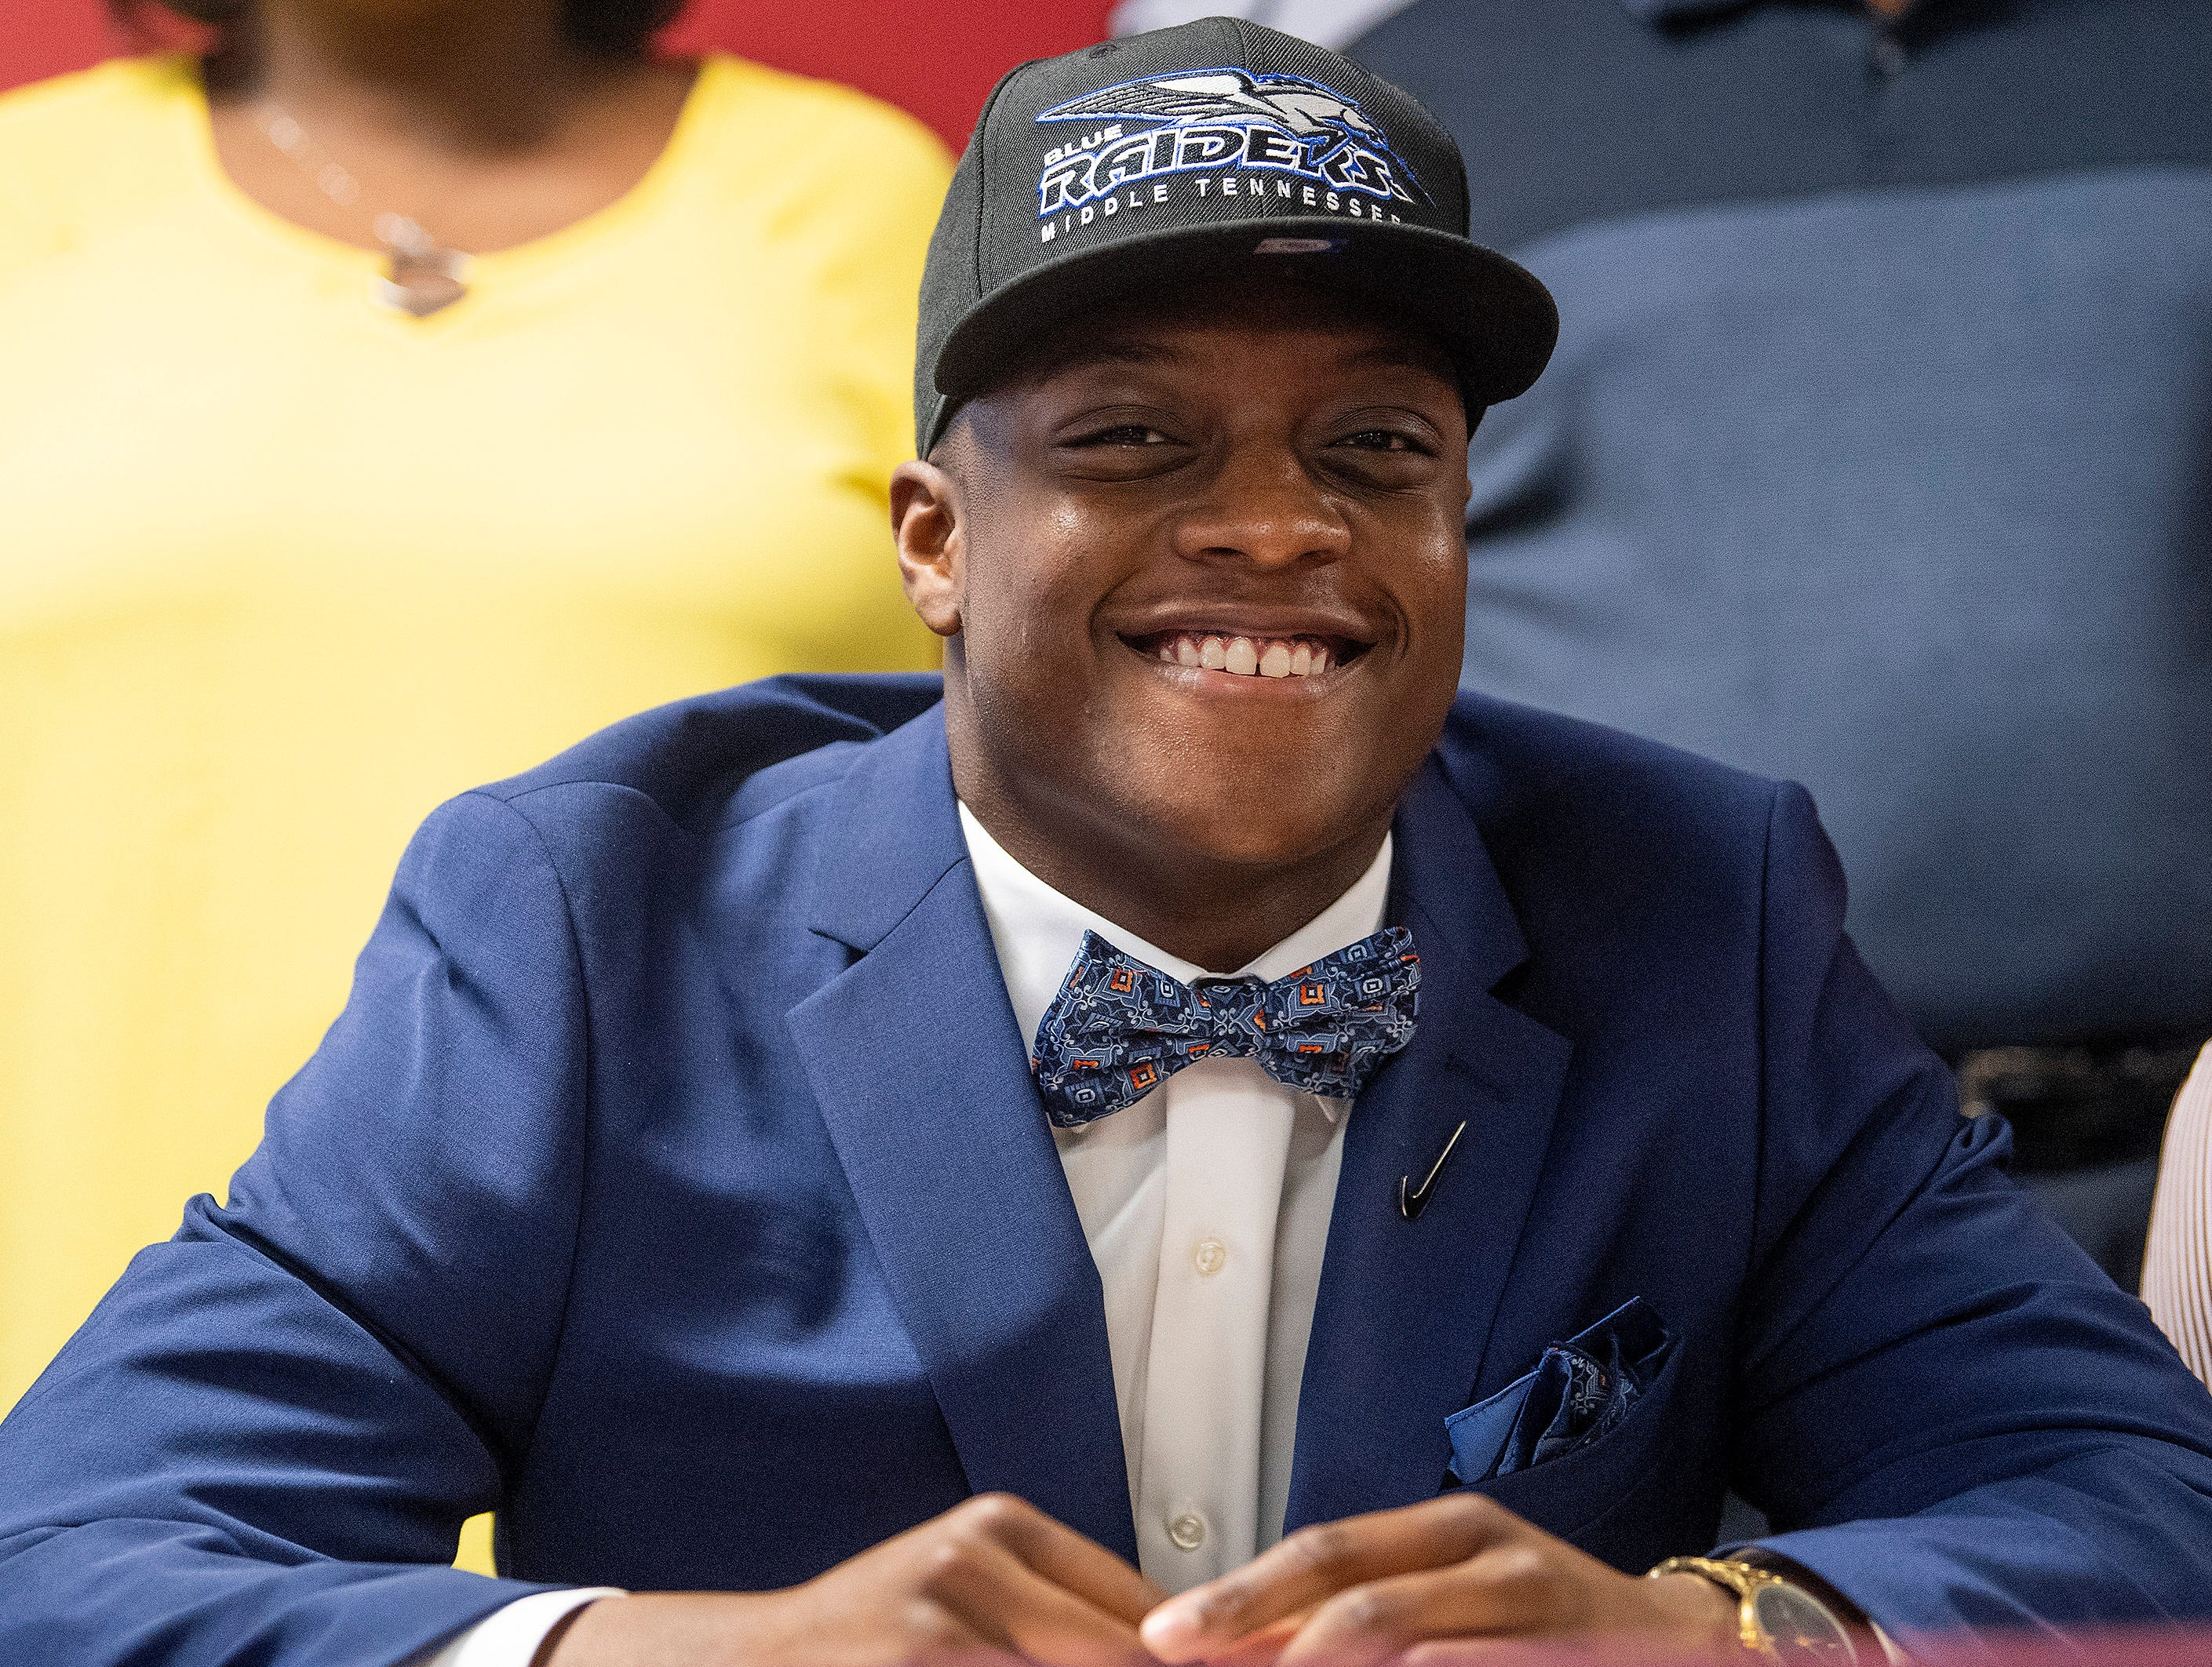 Prattville linebacker Rodney Thompson signs to play at Middle Tennessee during college football signing day at the school's campus in Pratttville, Ala., on Wednesday February 6, 2019.